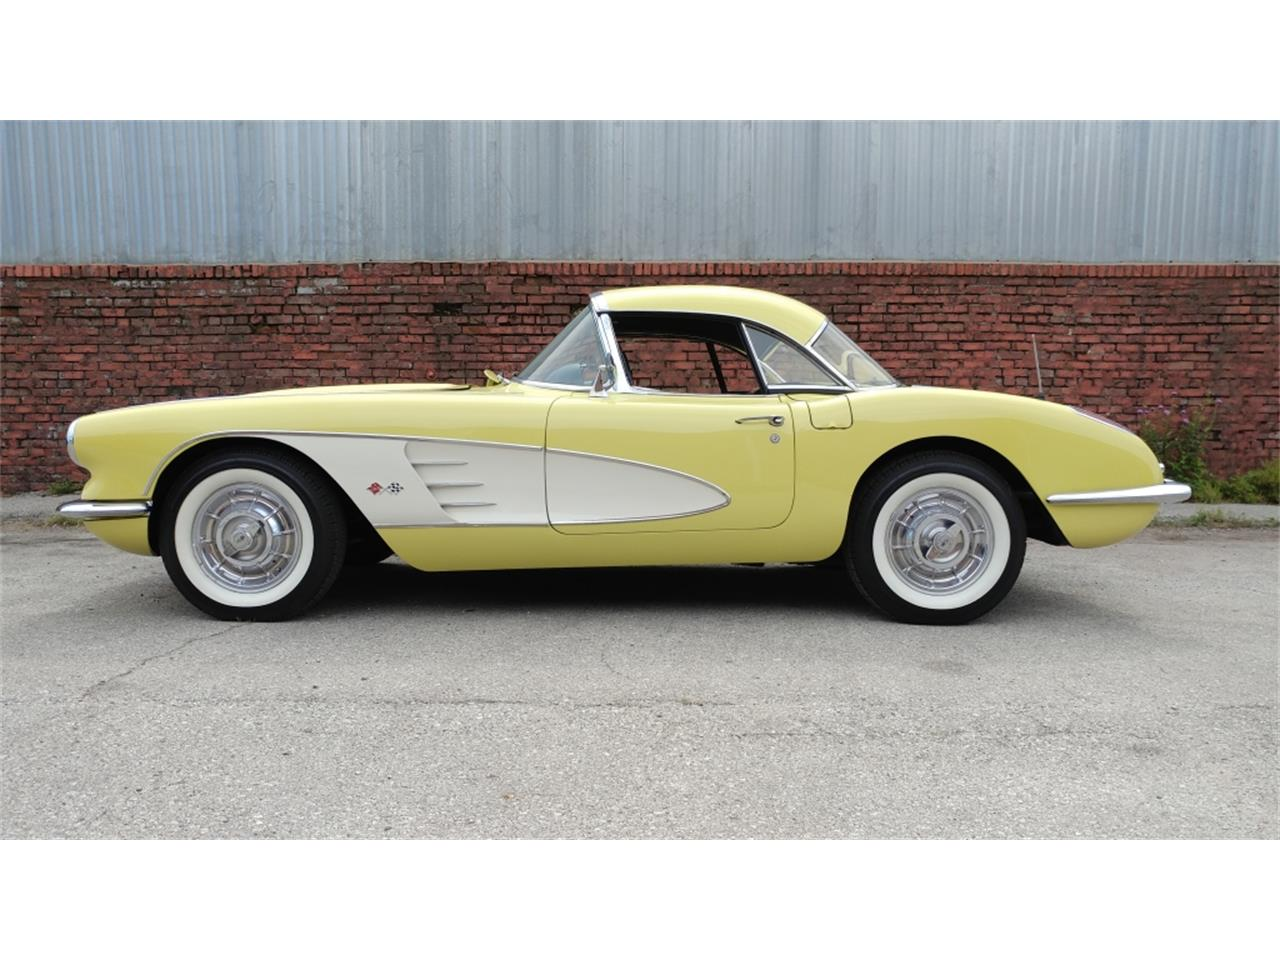 Large Picture of 1958 Chevrolet Corvette - $75,999.00 Offered by Vintage Vettes, LLC - MO26